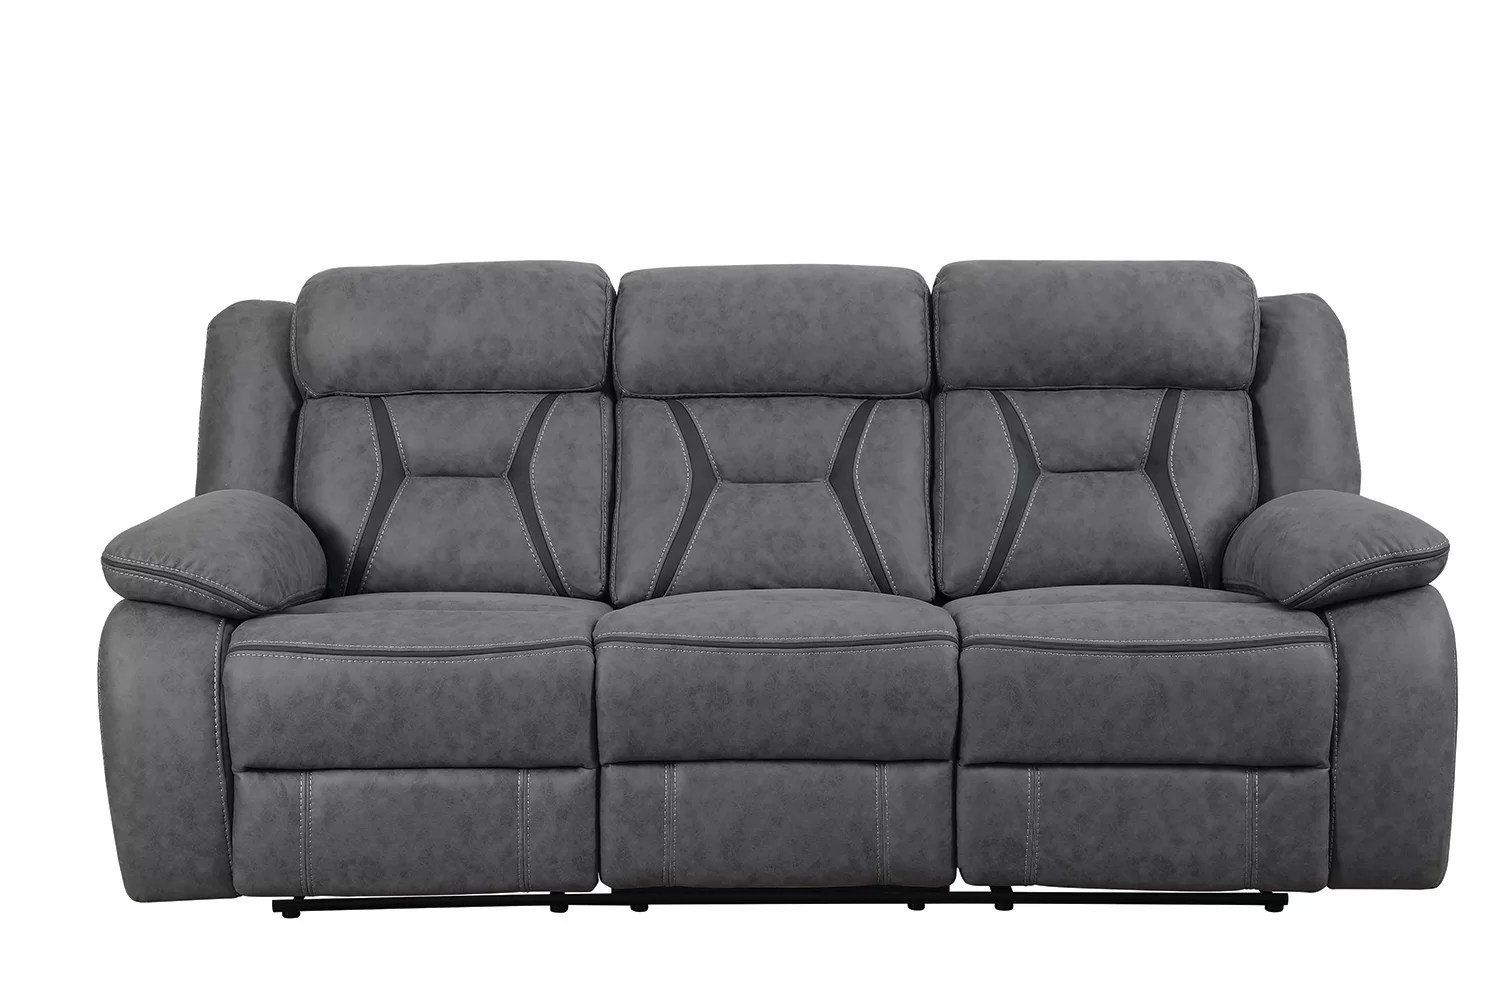 Sofa Repair Charlotte Nc Reingard Motion Reclining Sofa